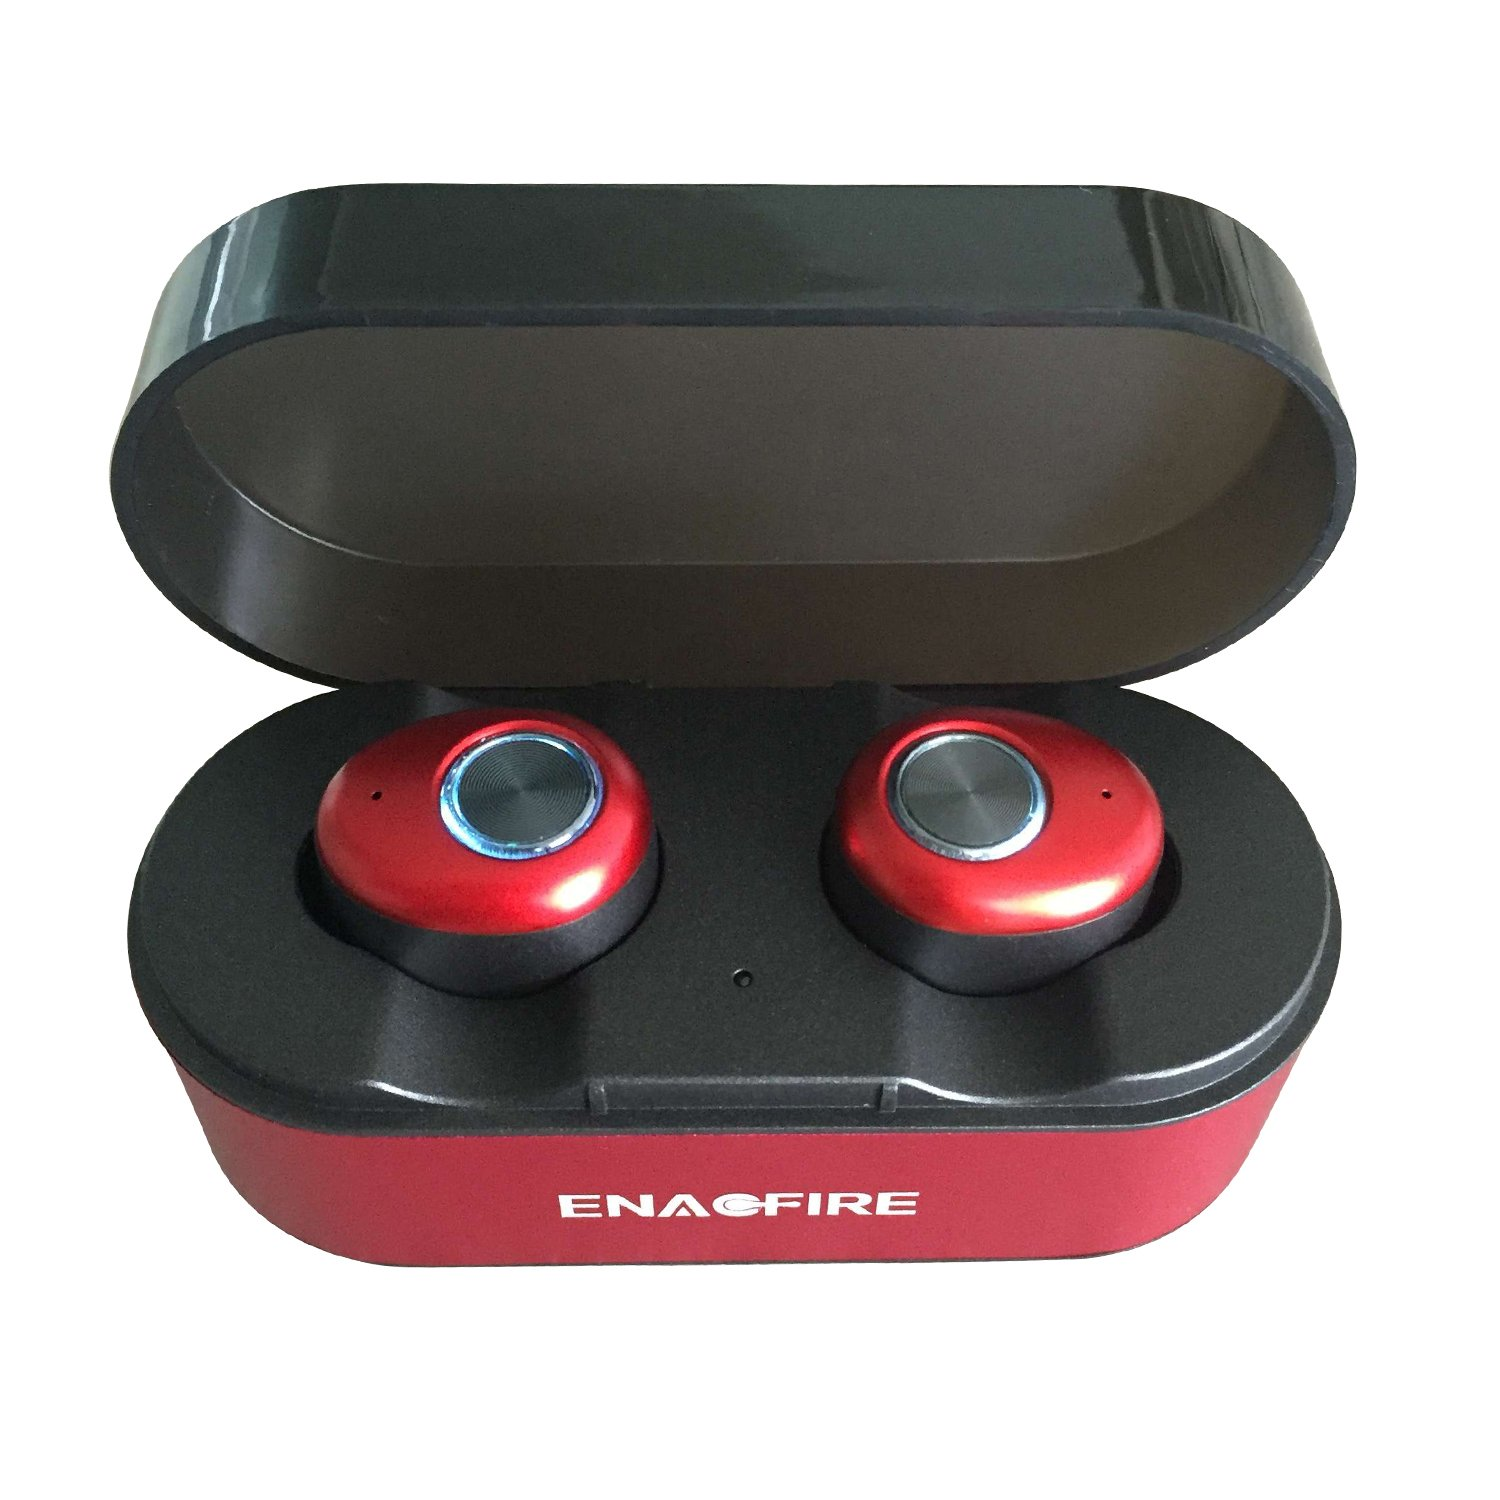 c7f55fb1f64 Galleon - Tiamat Wireless Earbuds, ENACFIRE E18 Bluetooth Earbuds 15H  Playtime 3D Stereo Sound Wireless Headphones (Red)